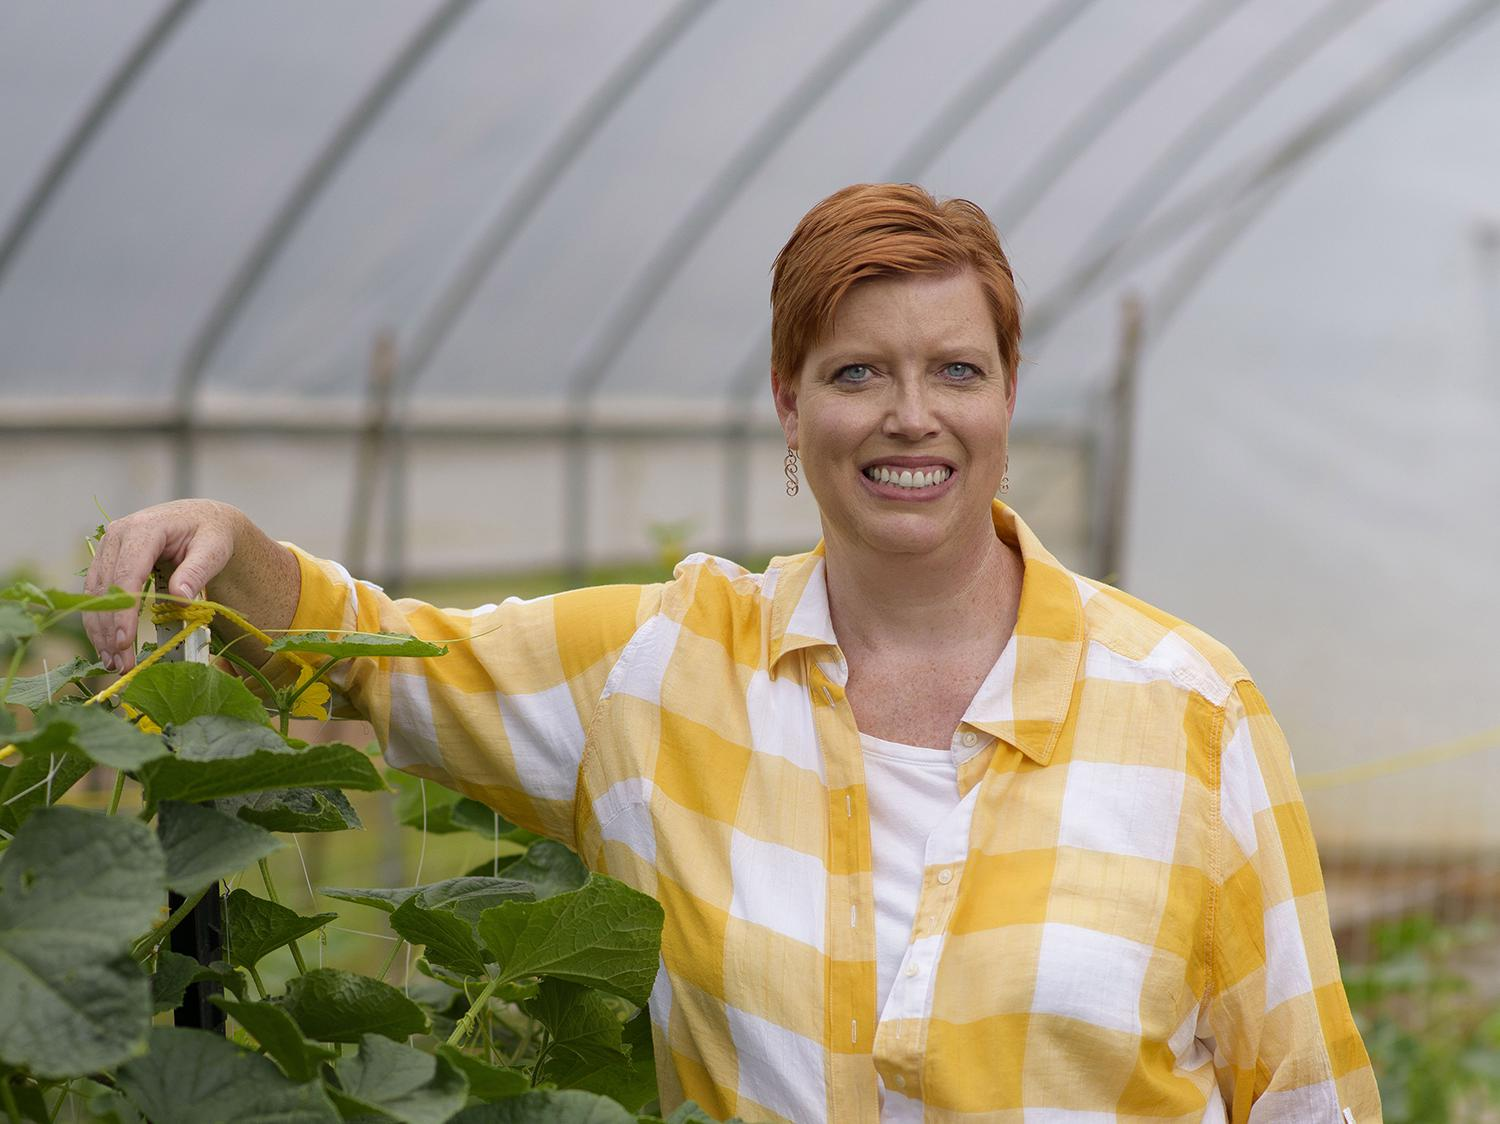 Christine Coker, a horticulture specialist with Mississippi State University, began sowing the seeds for her career in elementary school as a 4-H member. Now, she helps put food on Mississippians' tables with her research and Extension projects.